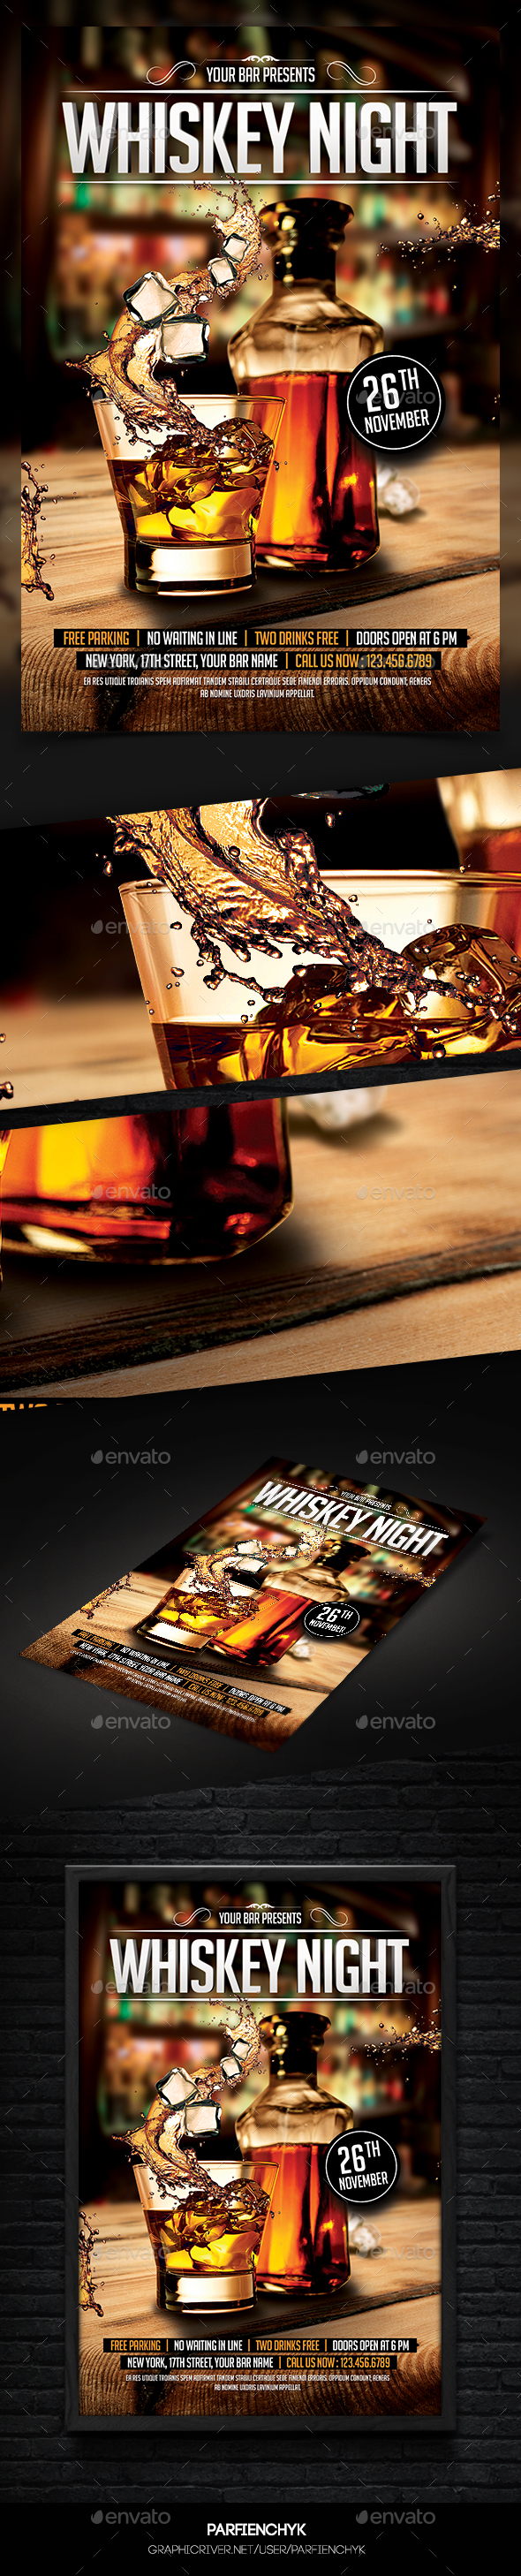 Whiskey Night Flyer Template - Clubs & Parties Events